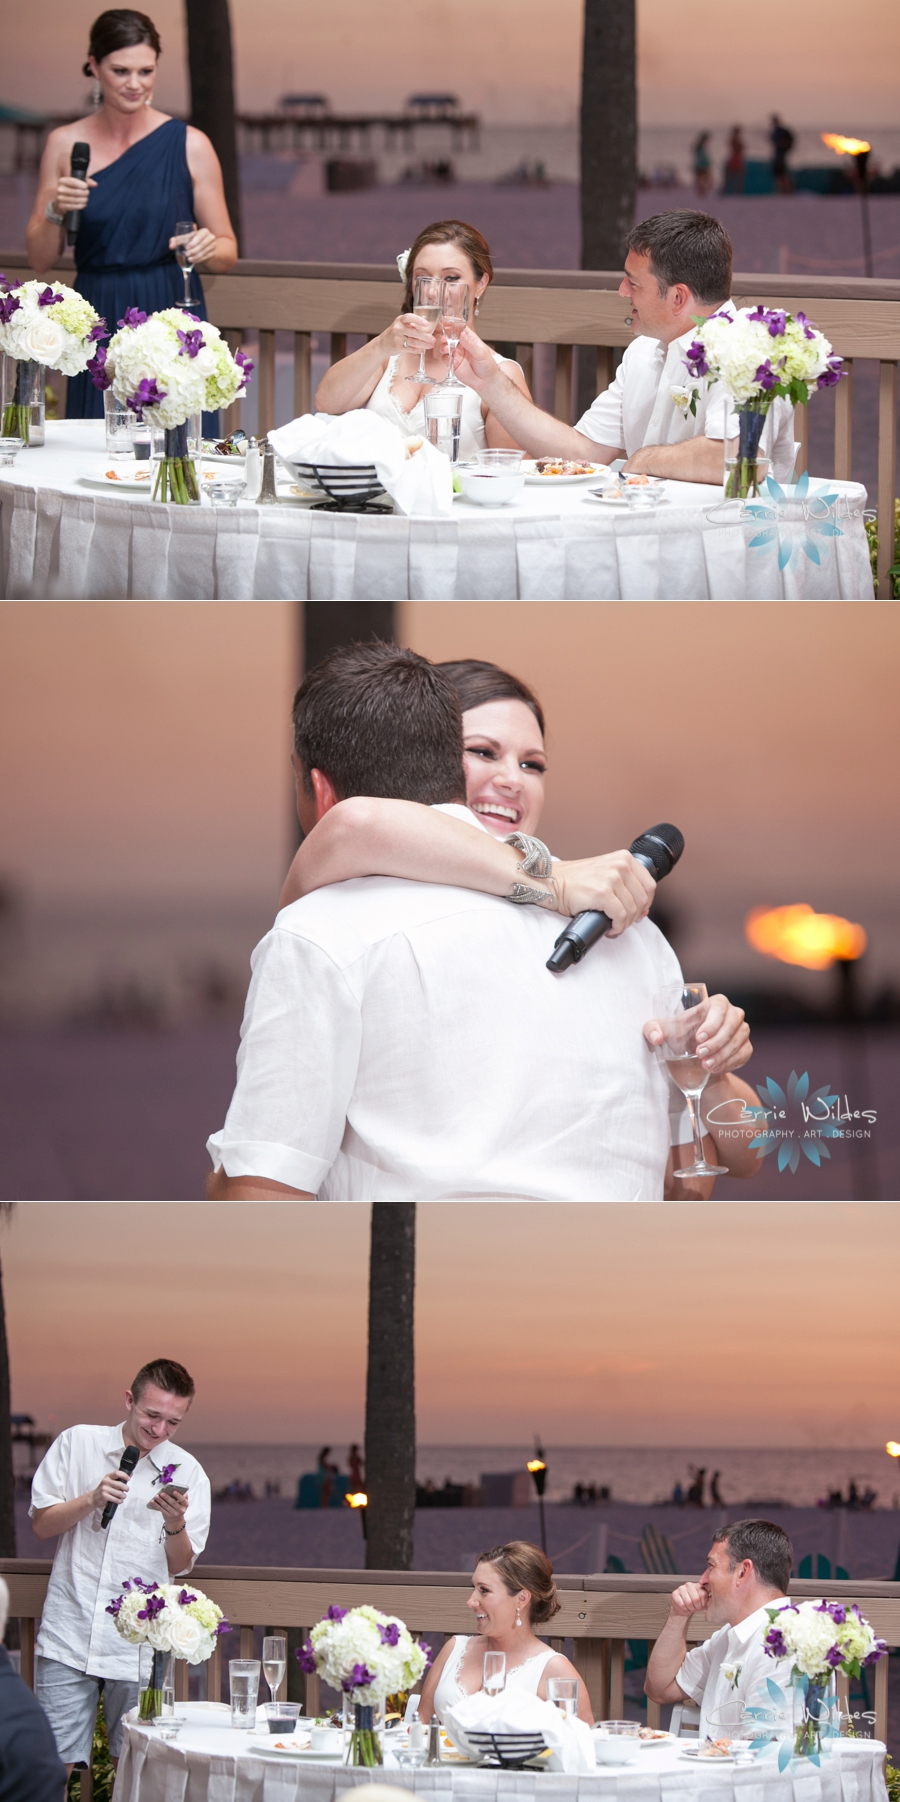 6_25_16 Kourtney and Marcel Hilton Clearwater Beach Wedding 22.jpg